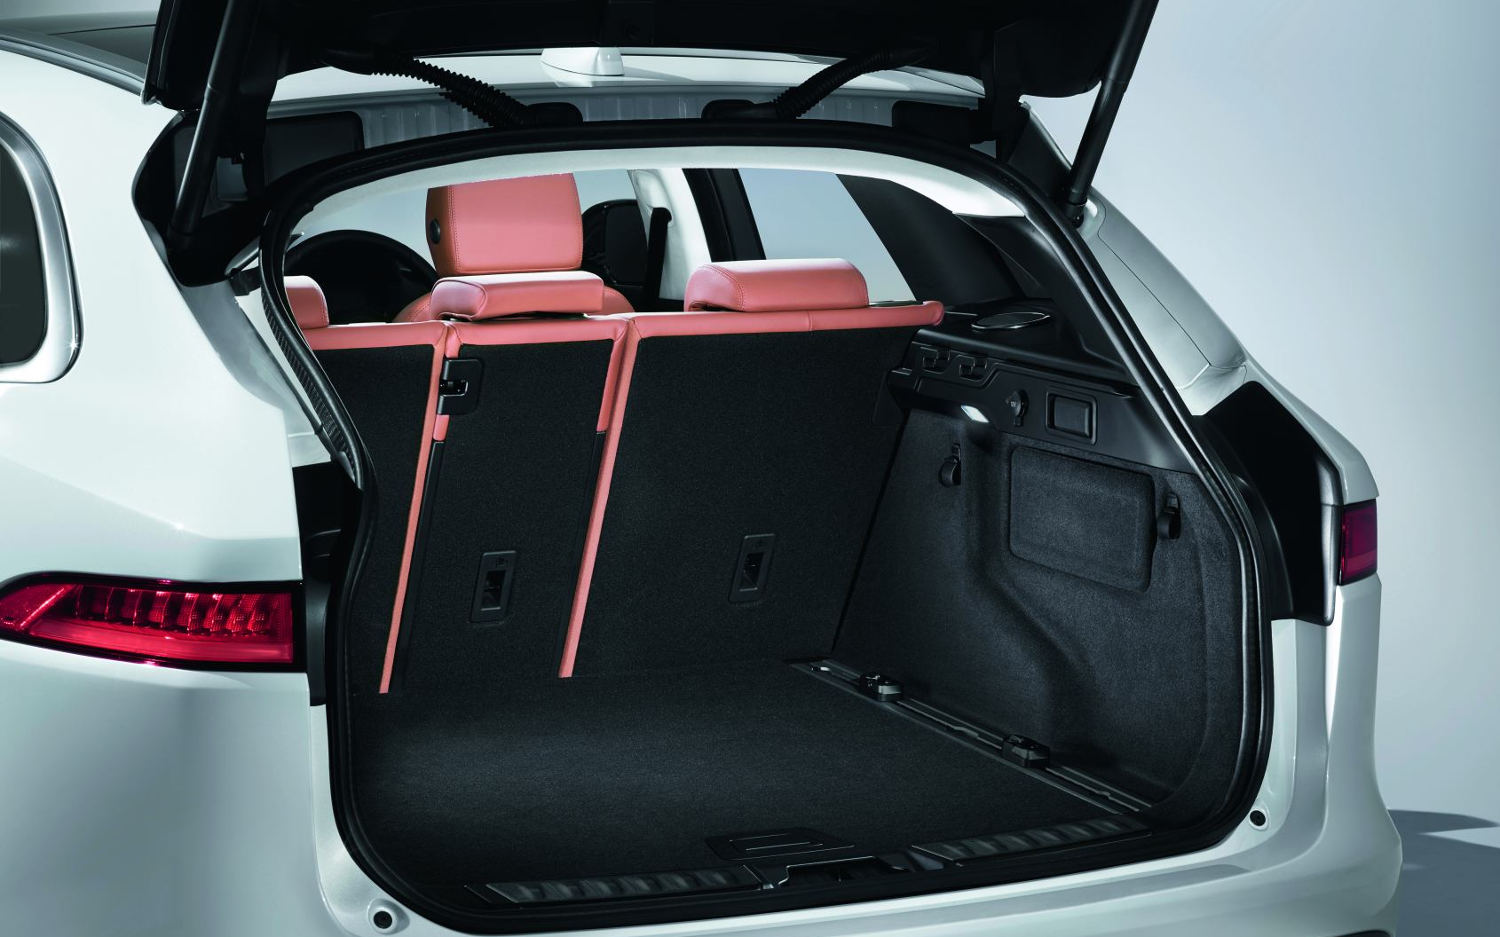 https://www.suvdrive.com/sites/default/files/public/Interior%20trunk/trunk-cargo-Jaguar%20F-pace%20premium%202017.jpg